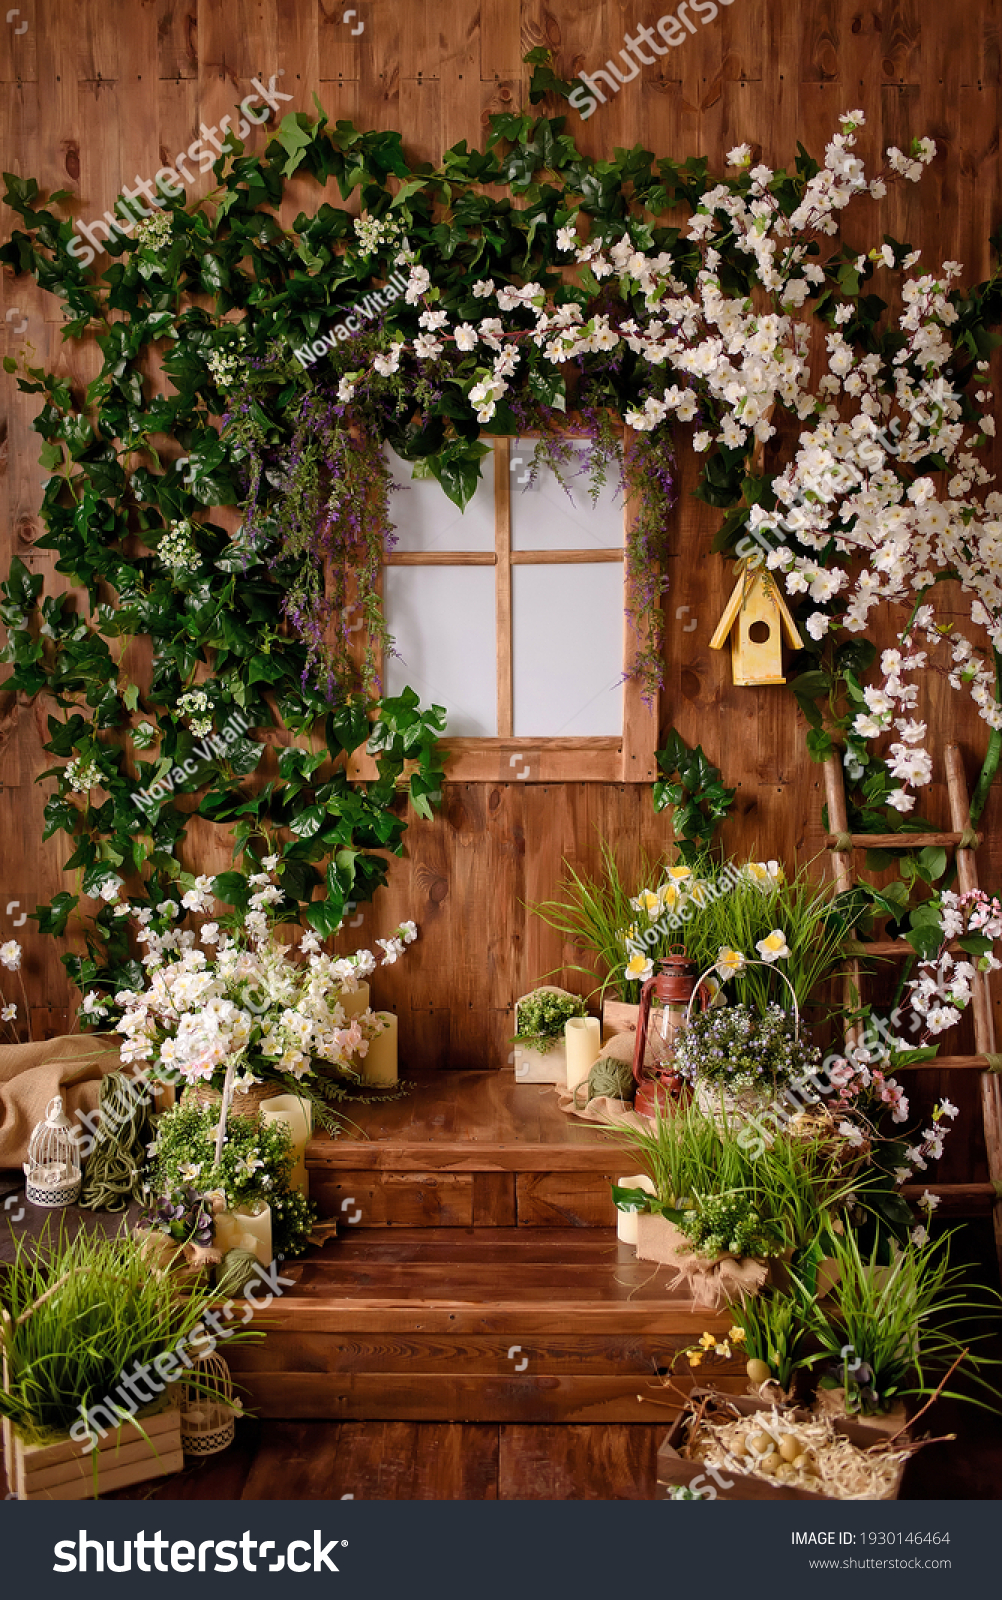 Spring backdrop.Backdrops for photo studio with spring decor for kids and family photo sessions.Selective focus. #1930146464